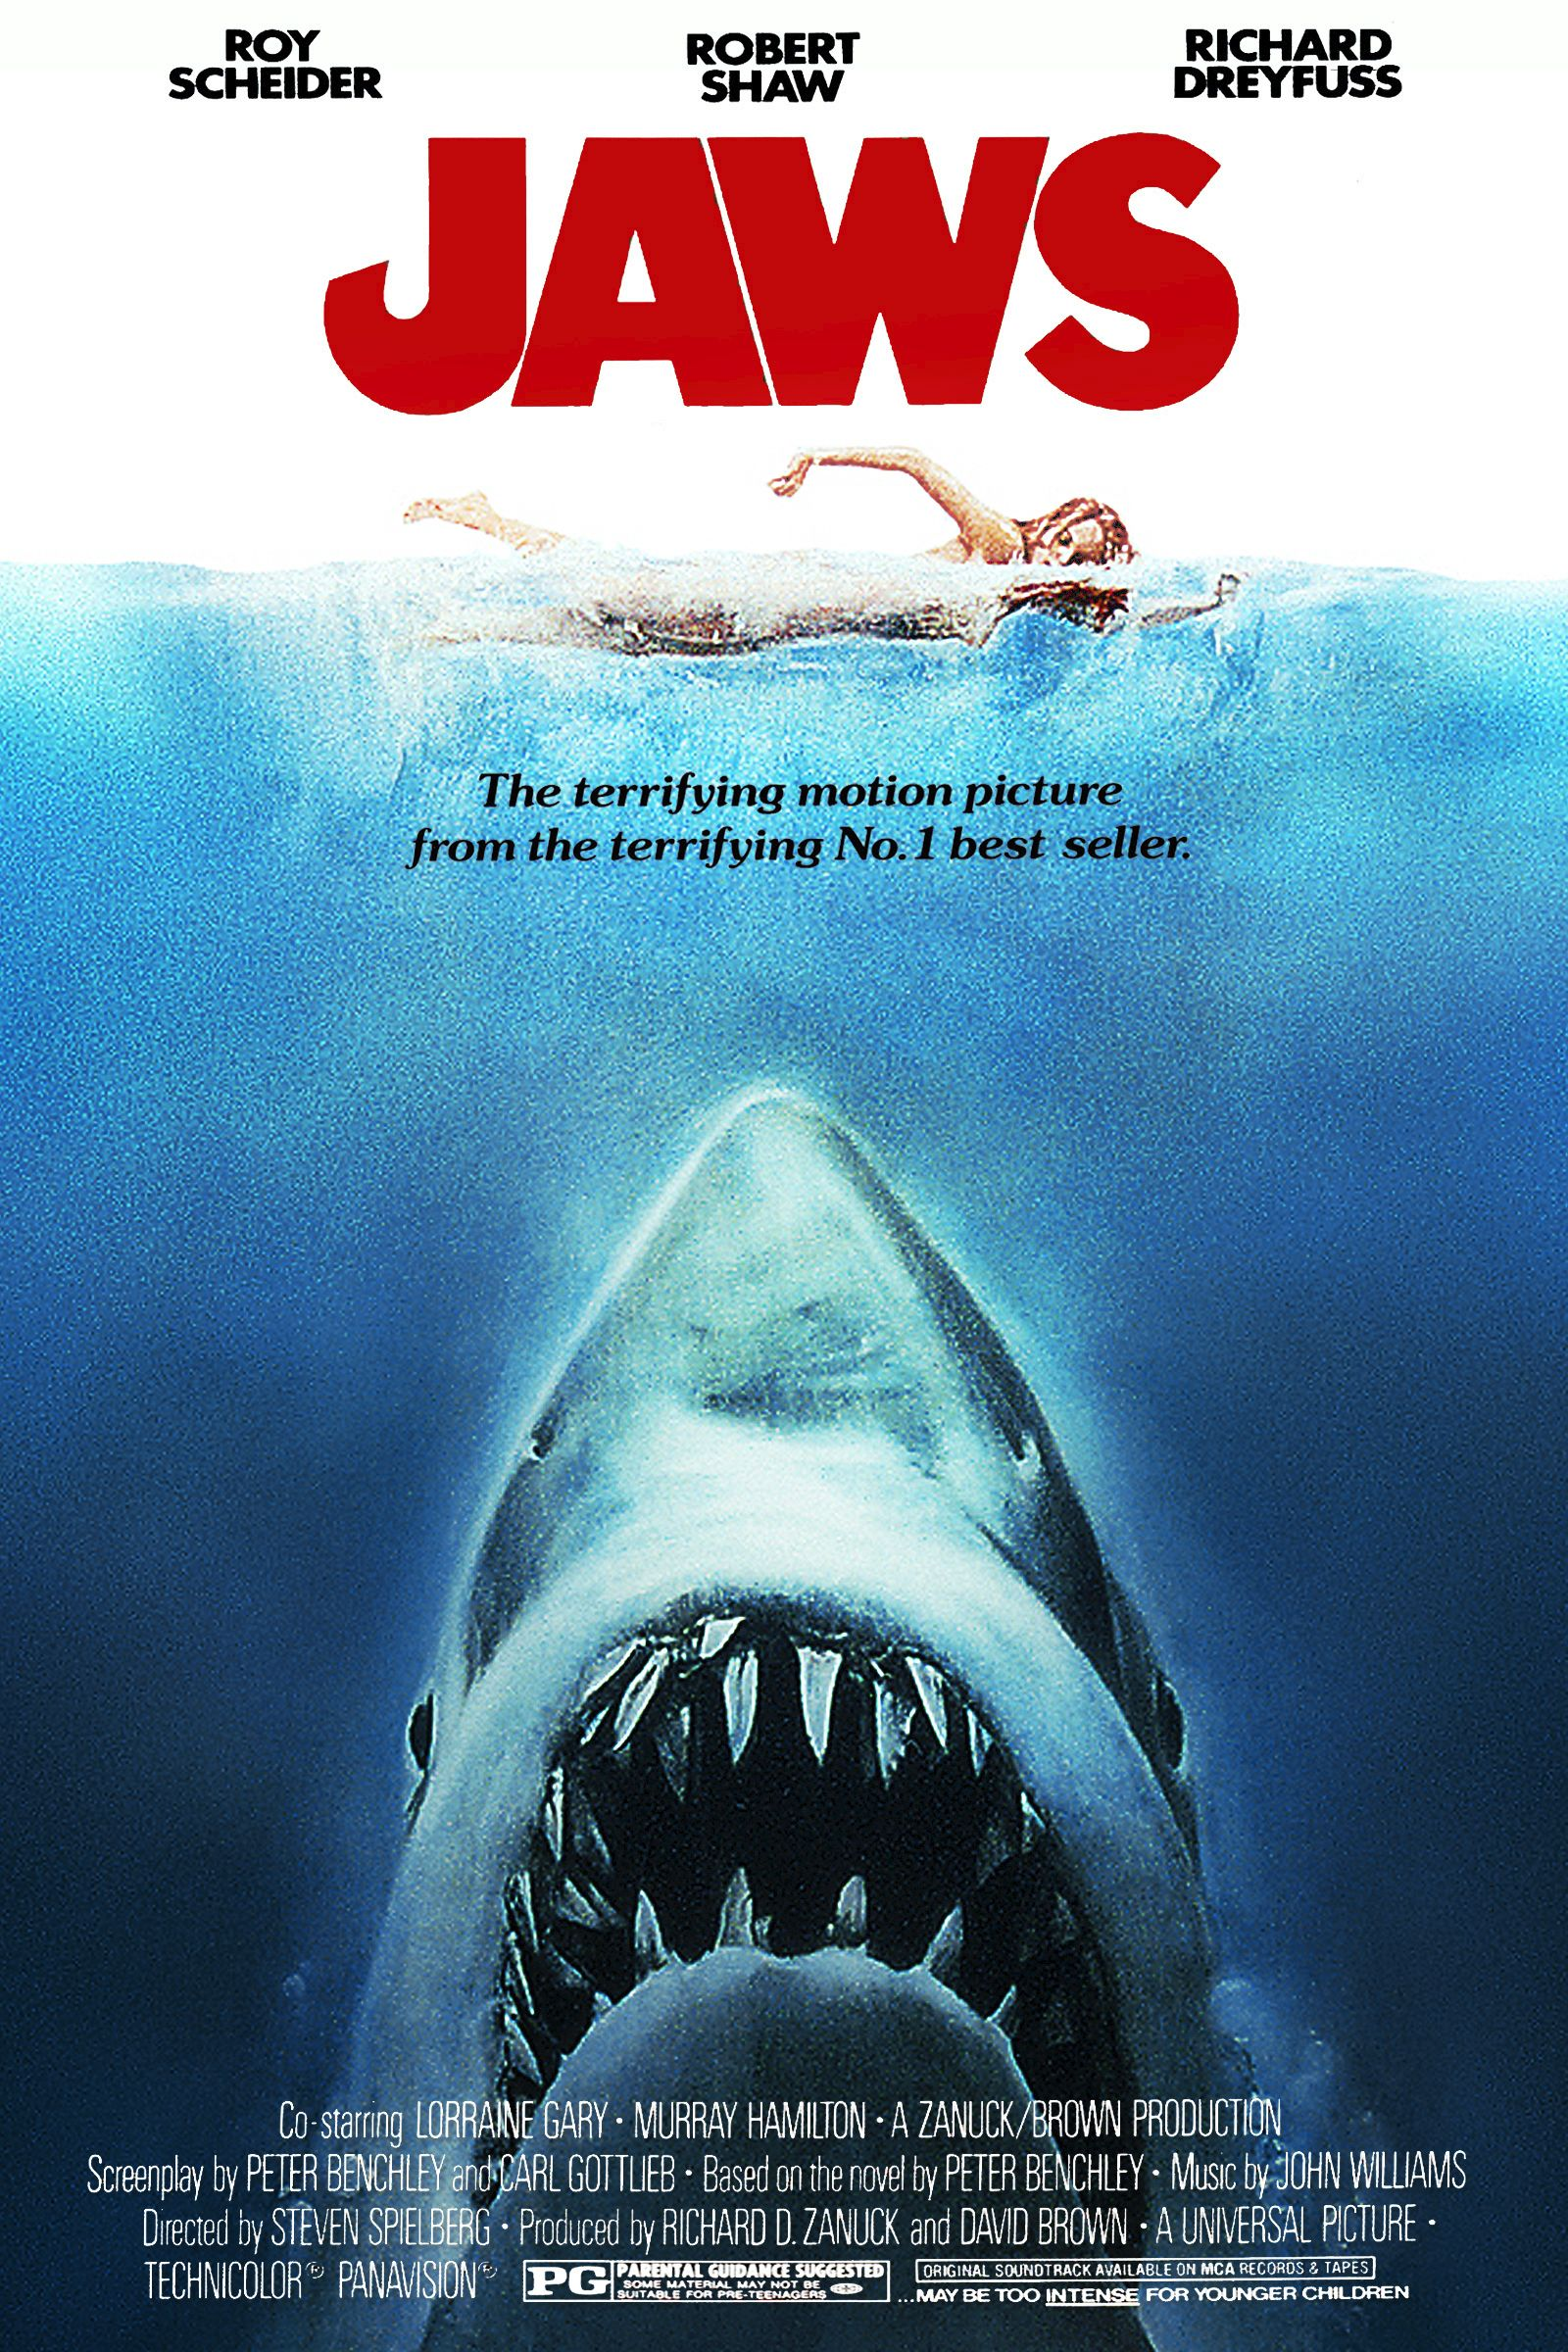 Spielberg Wall Art Print Decor TV Show Movie Room Gift Jaws Poster Unframed